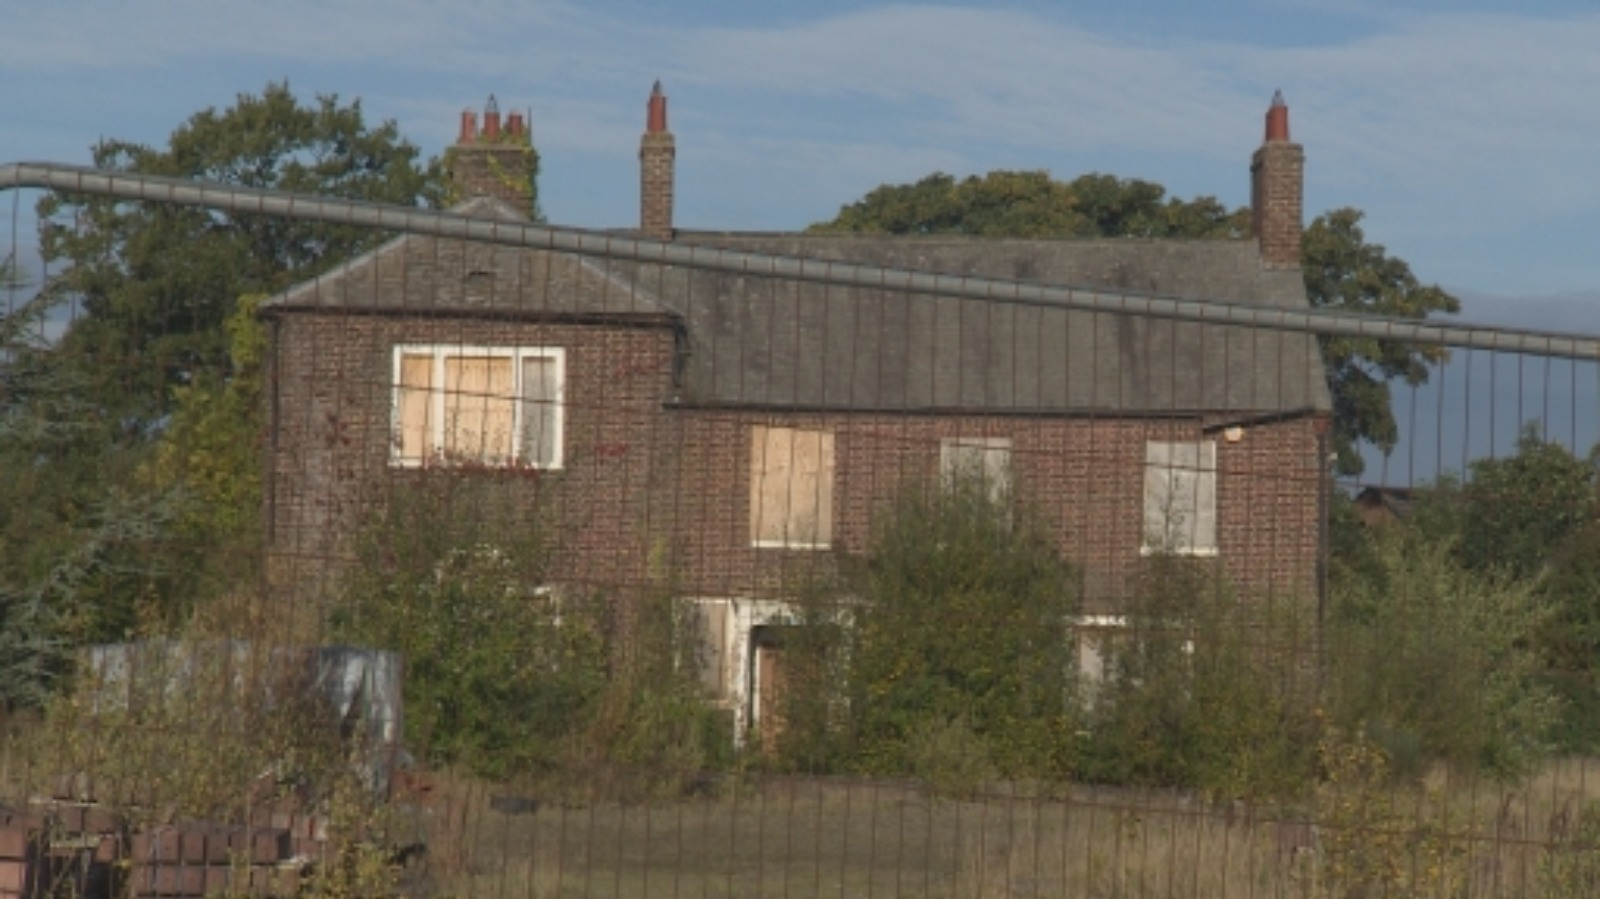 Demolition of carlisle house could be illegal border for The carlisle house